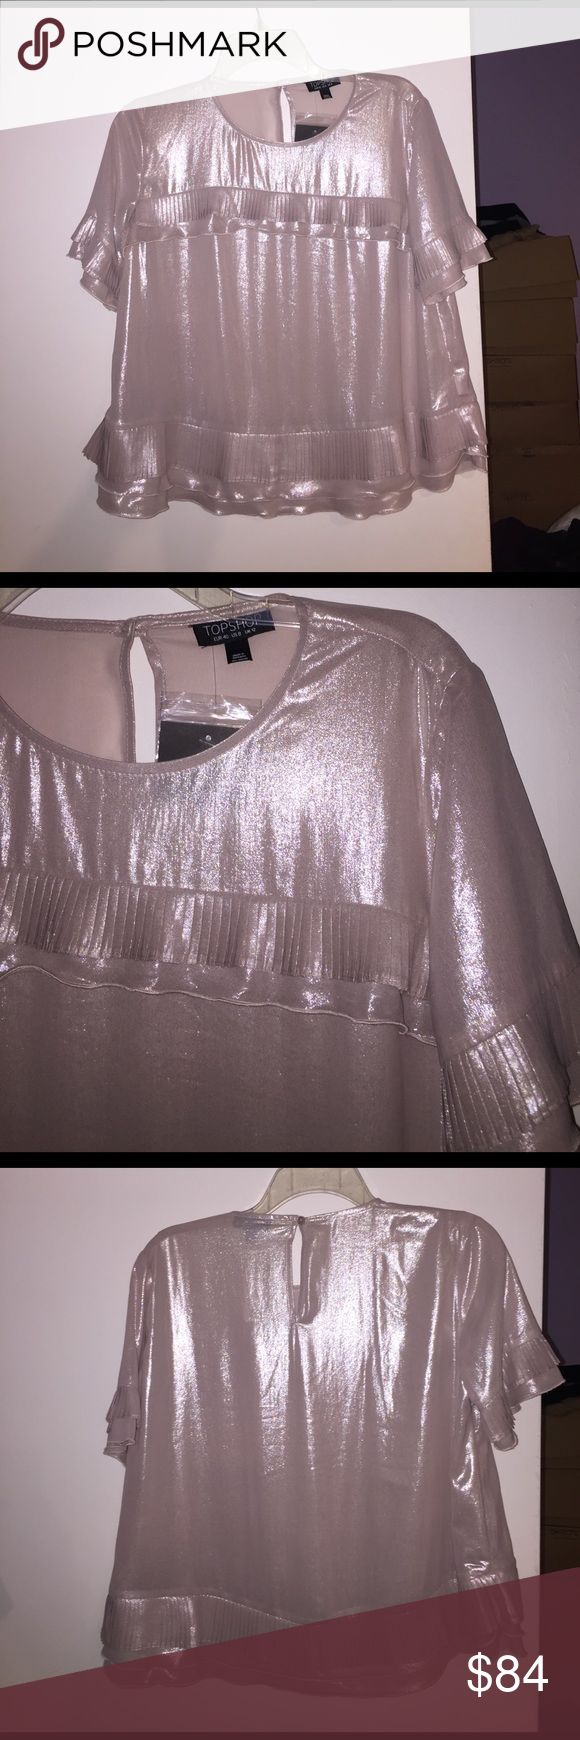 Metallic blouse with pleated frills New with tags. Beautiful sheen. Topshop Tops Blouses